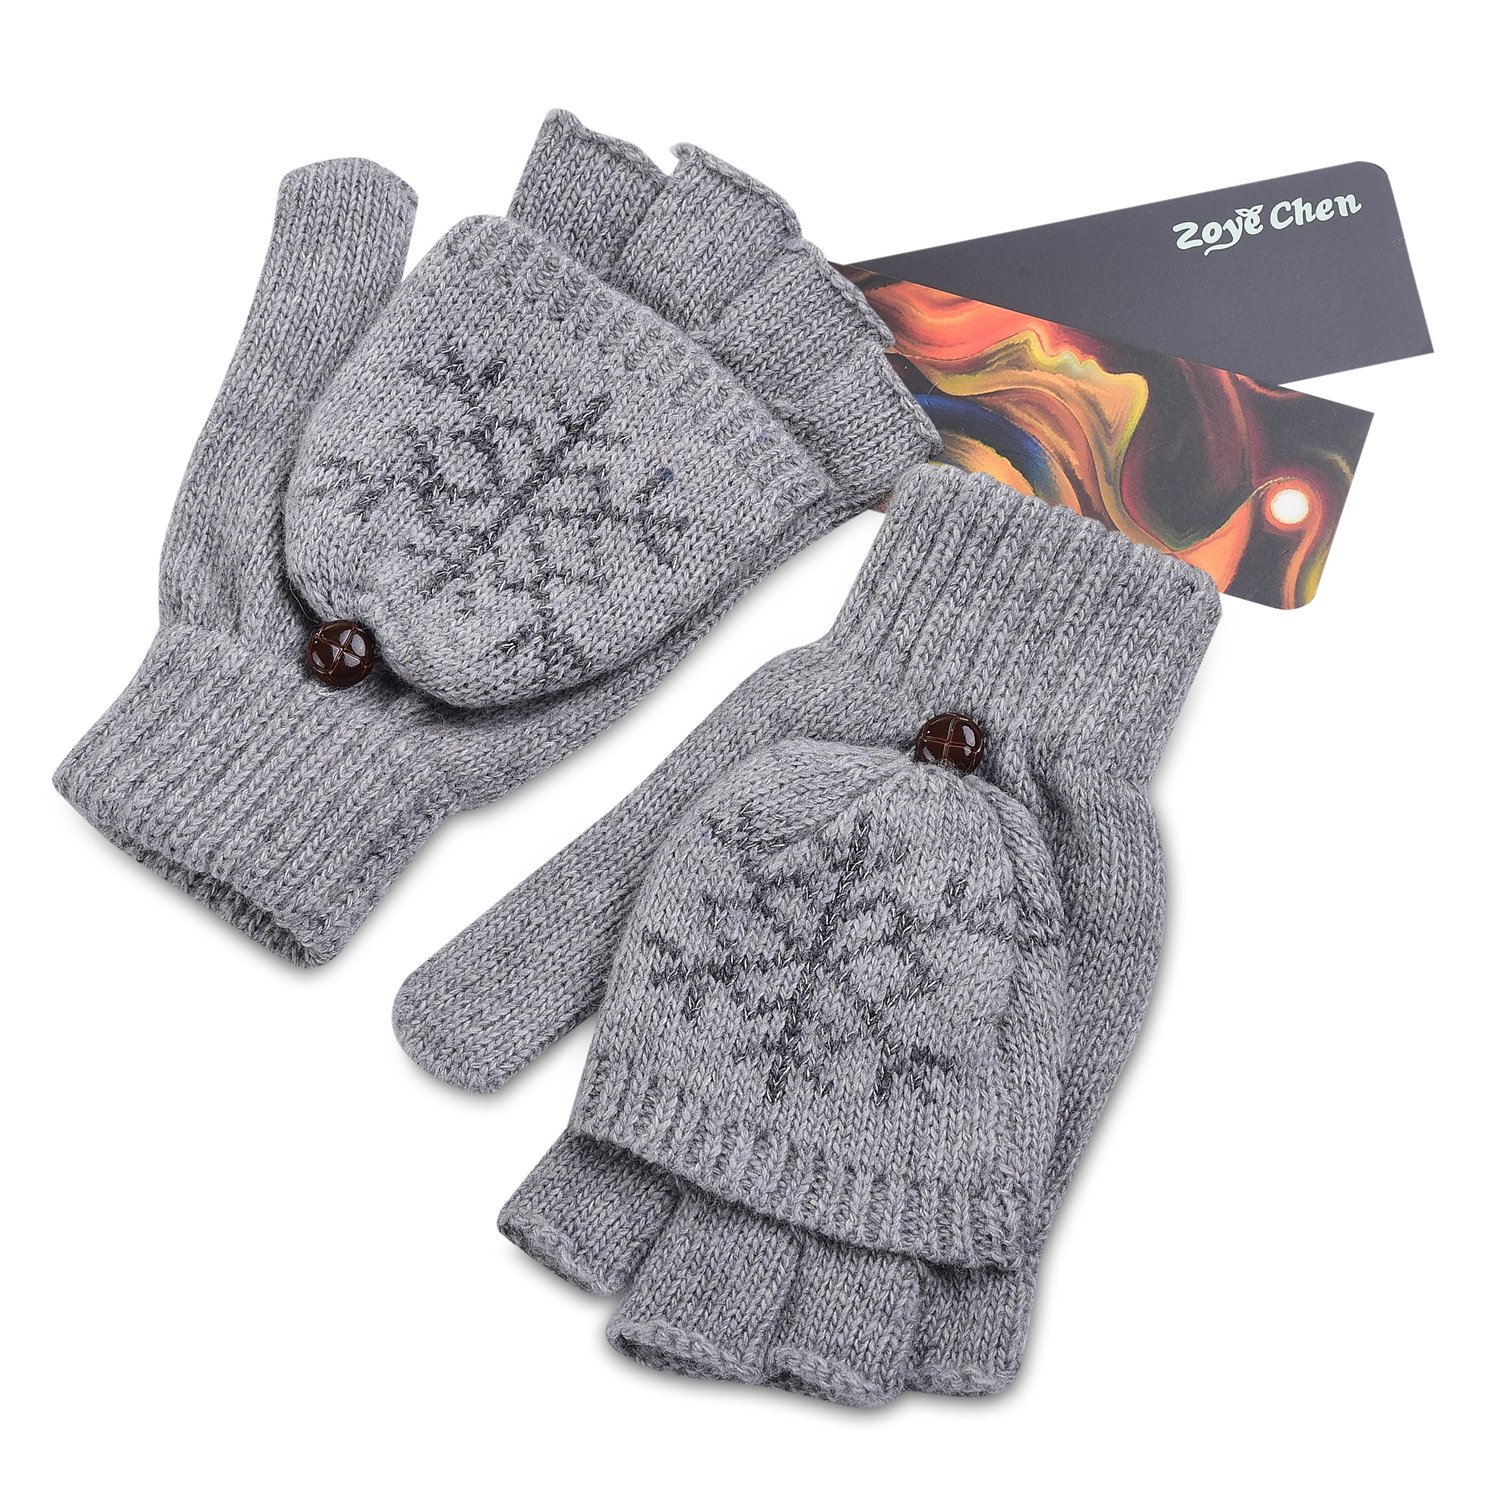 Winter's Thermal Insulation Mittens Warm Wool Knitted Convertible Fingerless Unisex Gloves (Gray)